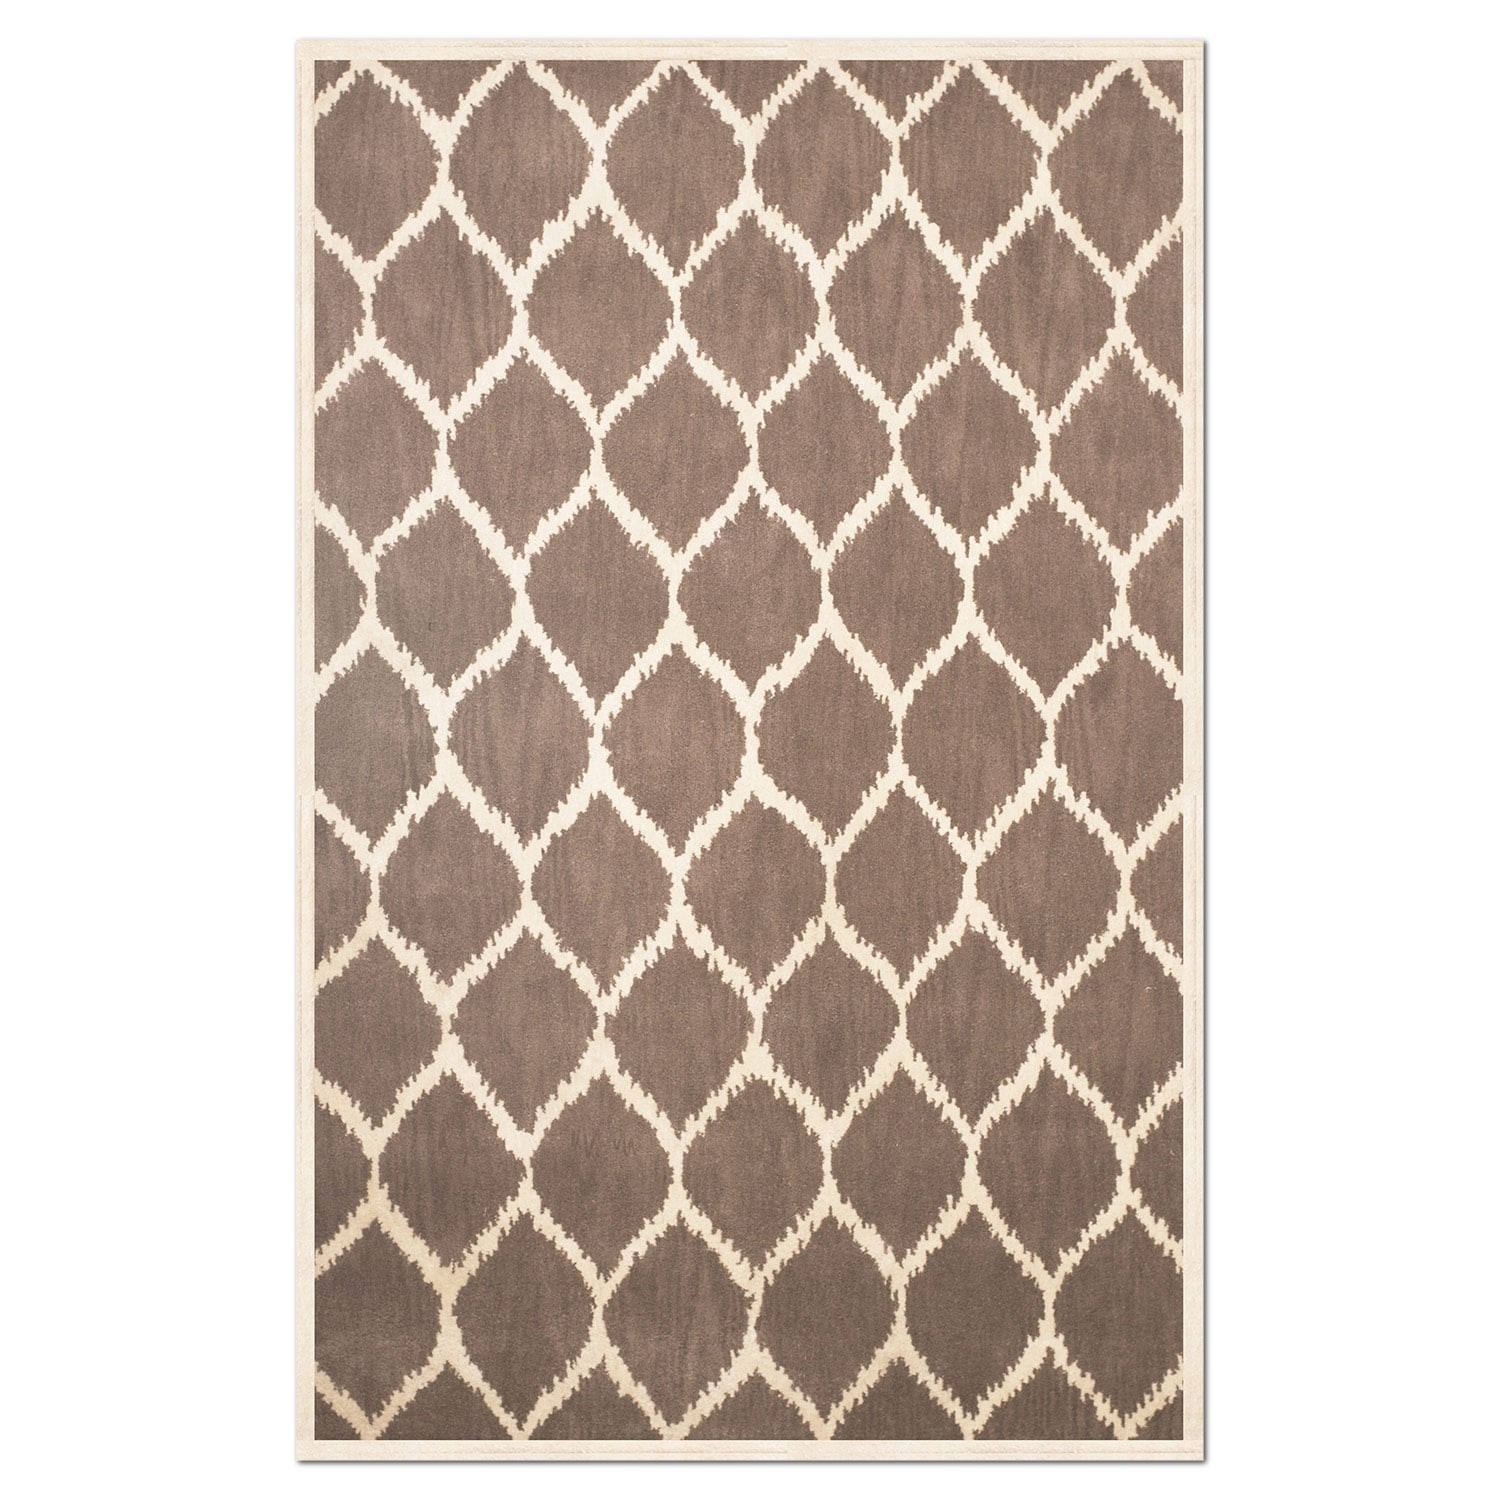 Rugs - Kimble Area Rug (8' x 10')